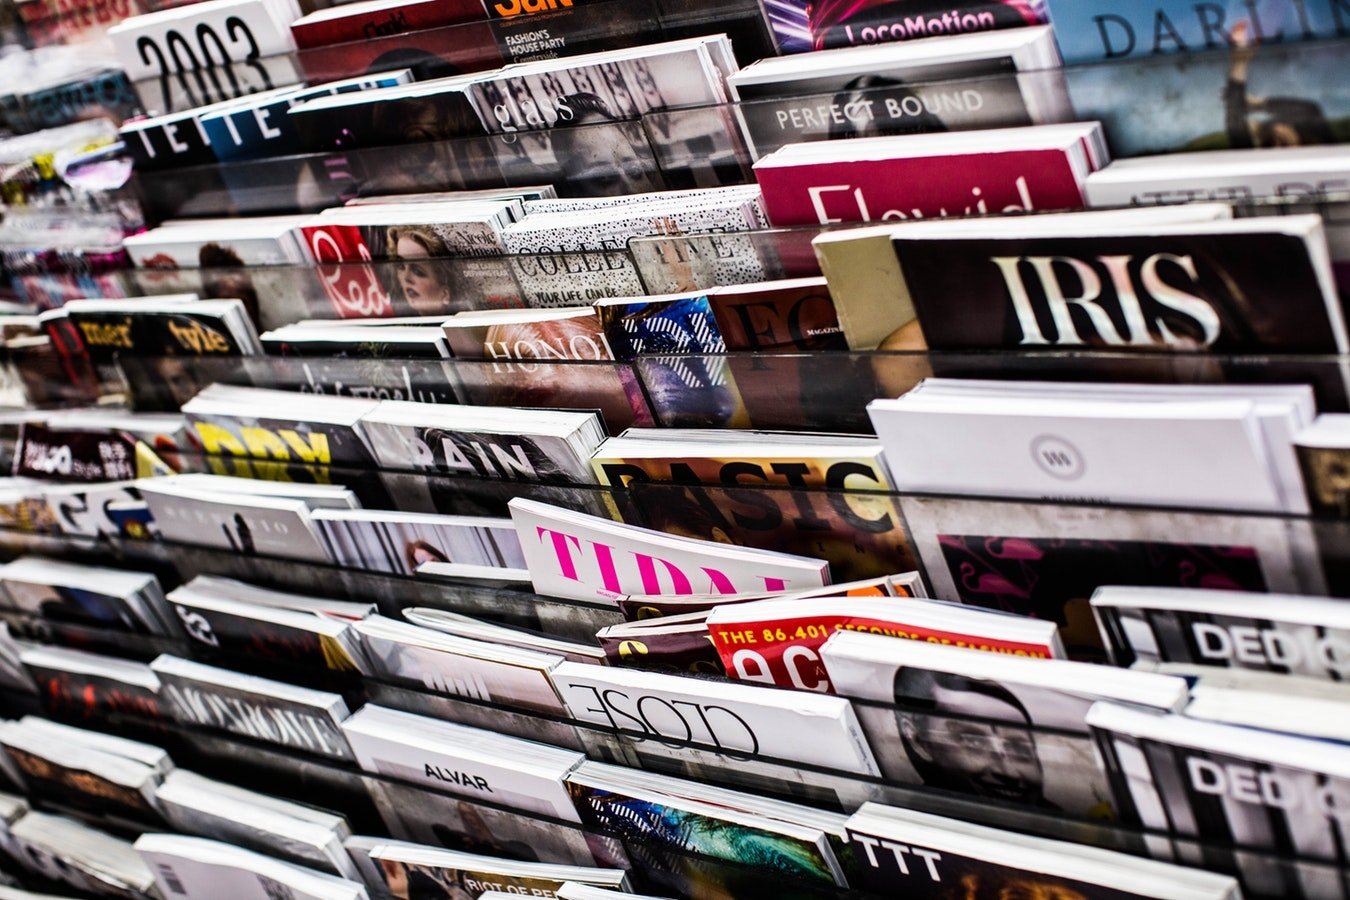 Magazines looking for freelance writers